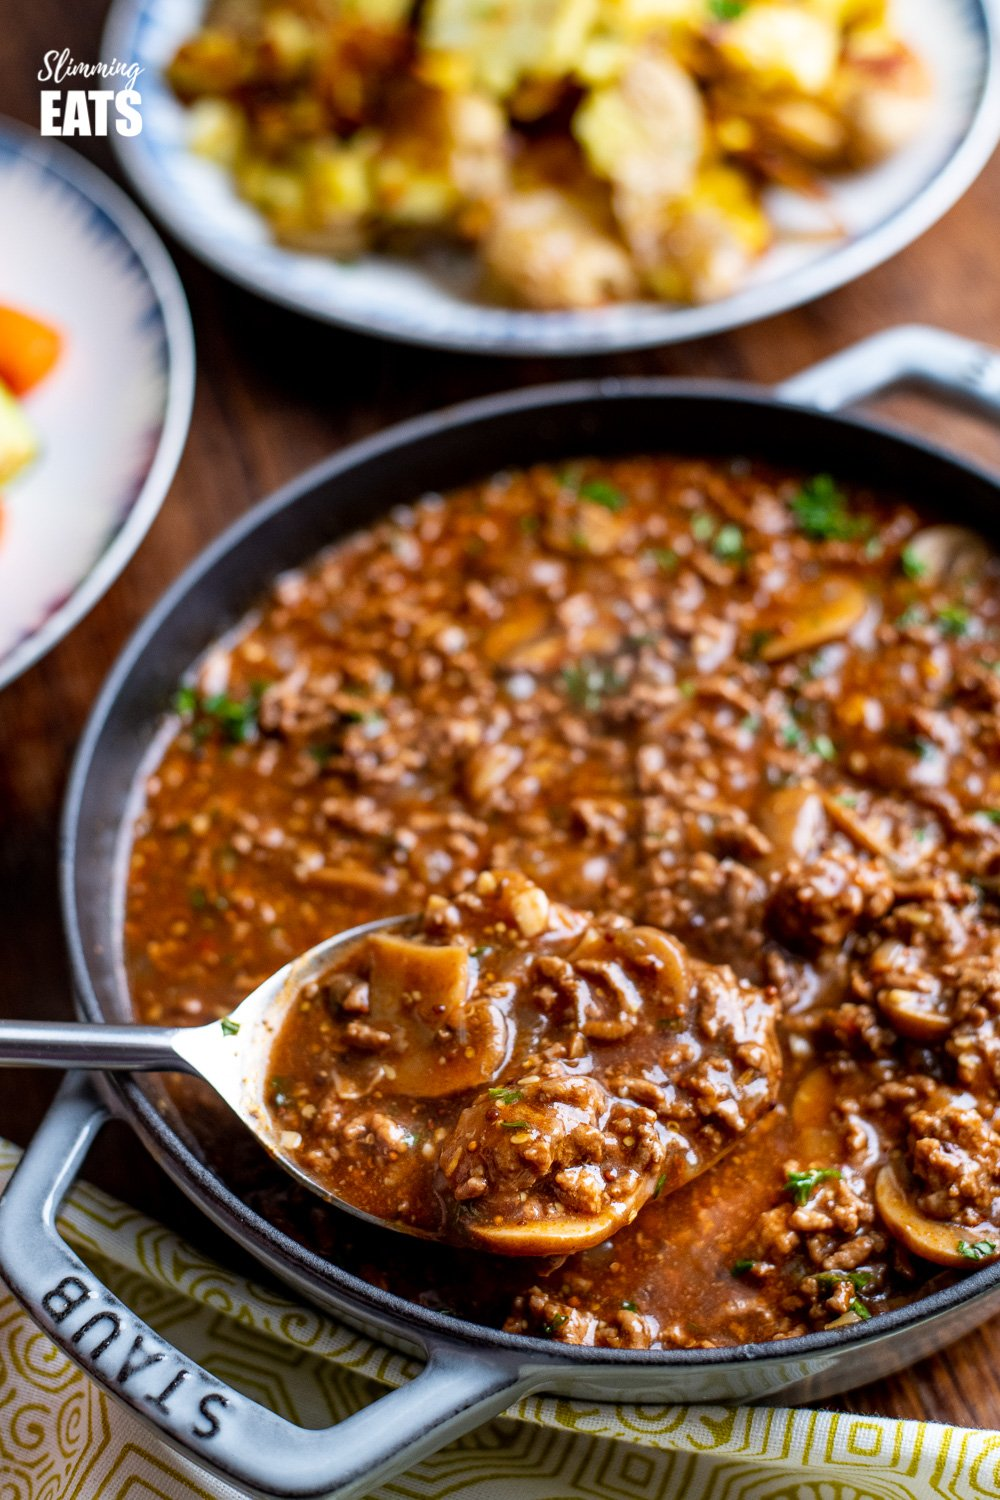 Rich Mustard Beef with Mushrooms in grey cast iron skillet